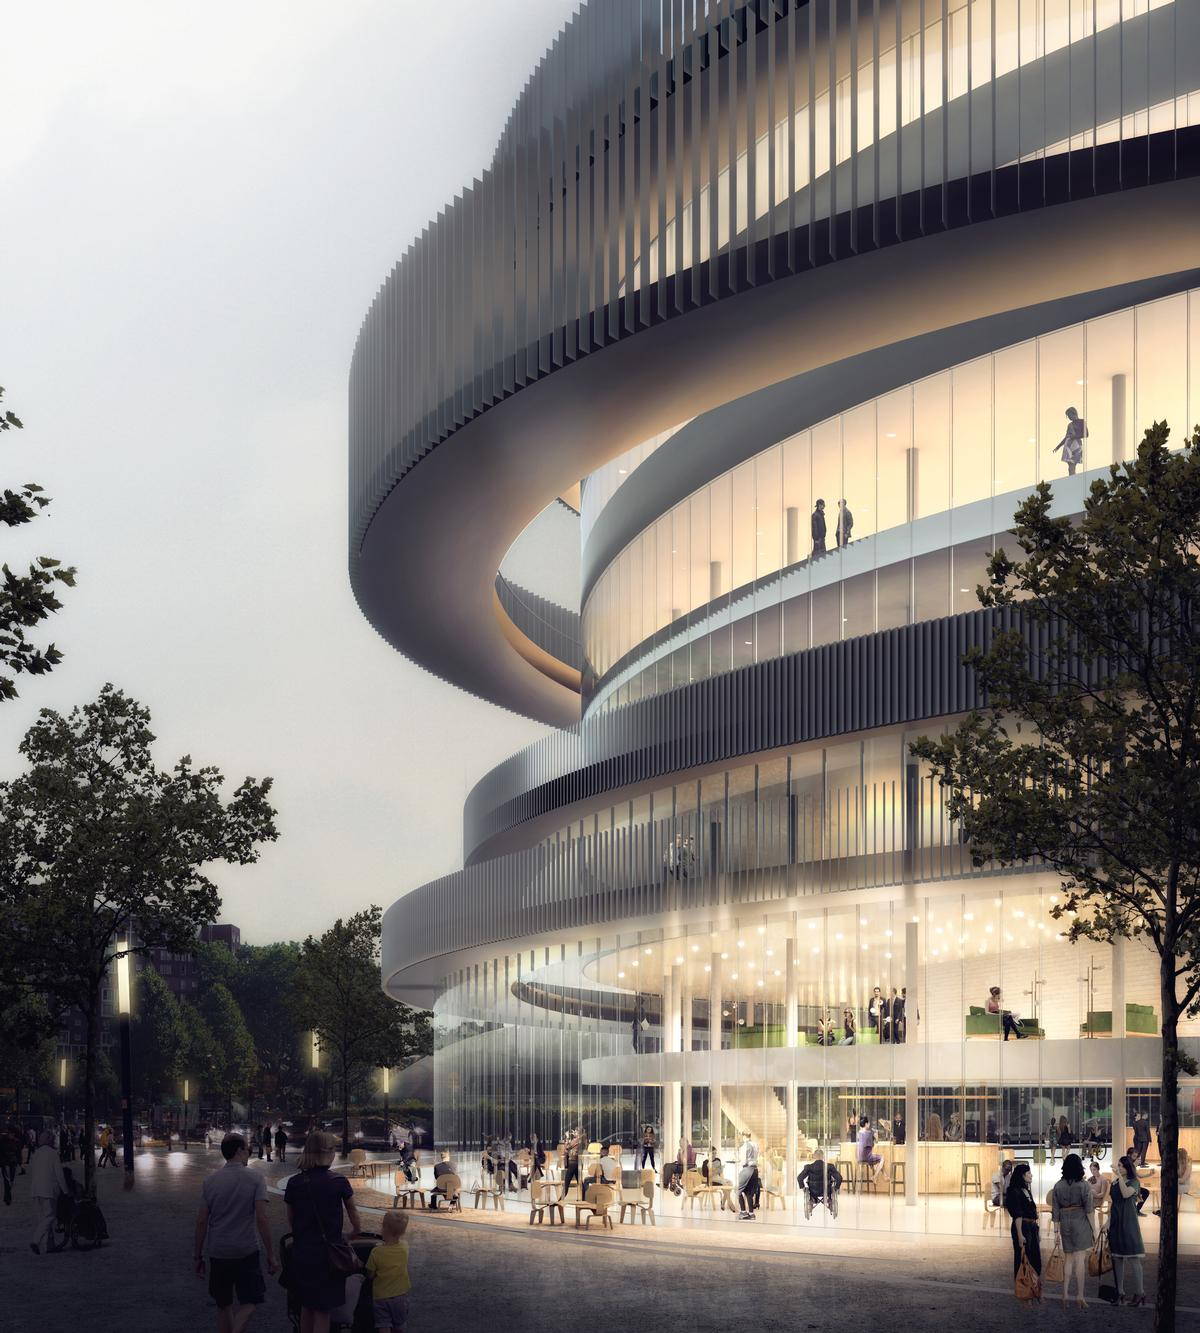 Wheelchair-friendly ramps and promenades will encircle the complex's exterior. / Courtesy of GA Smart Building